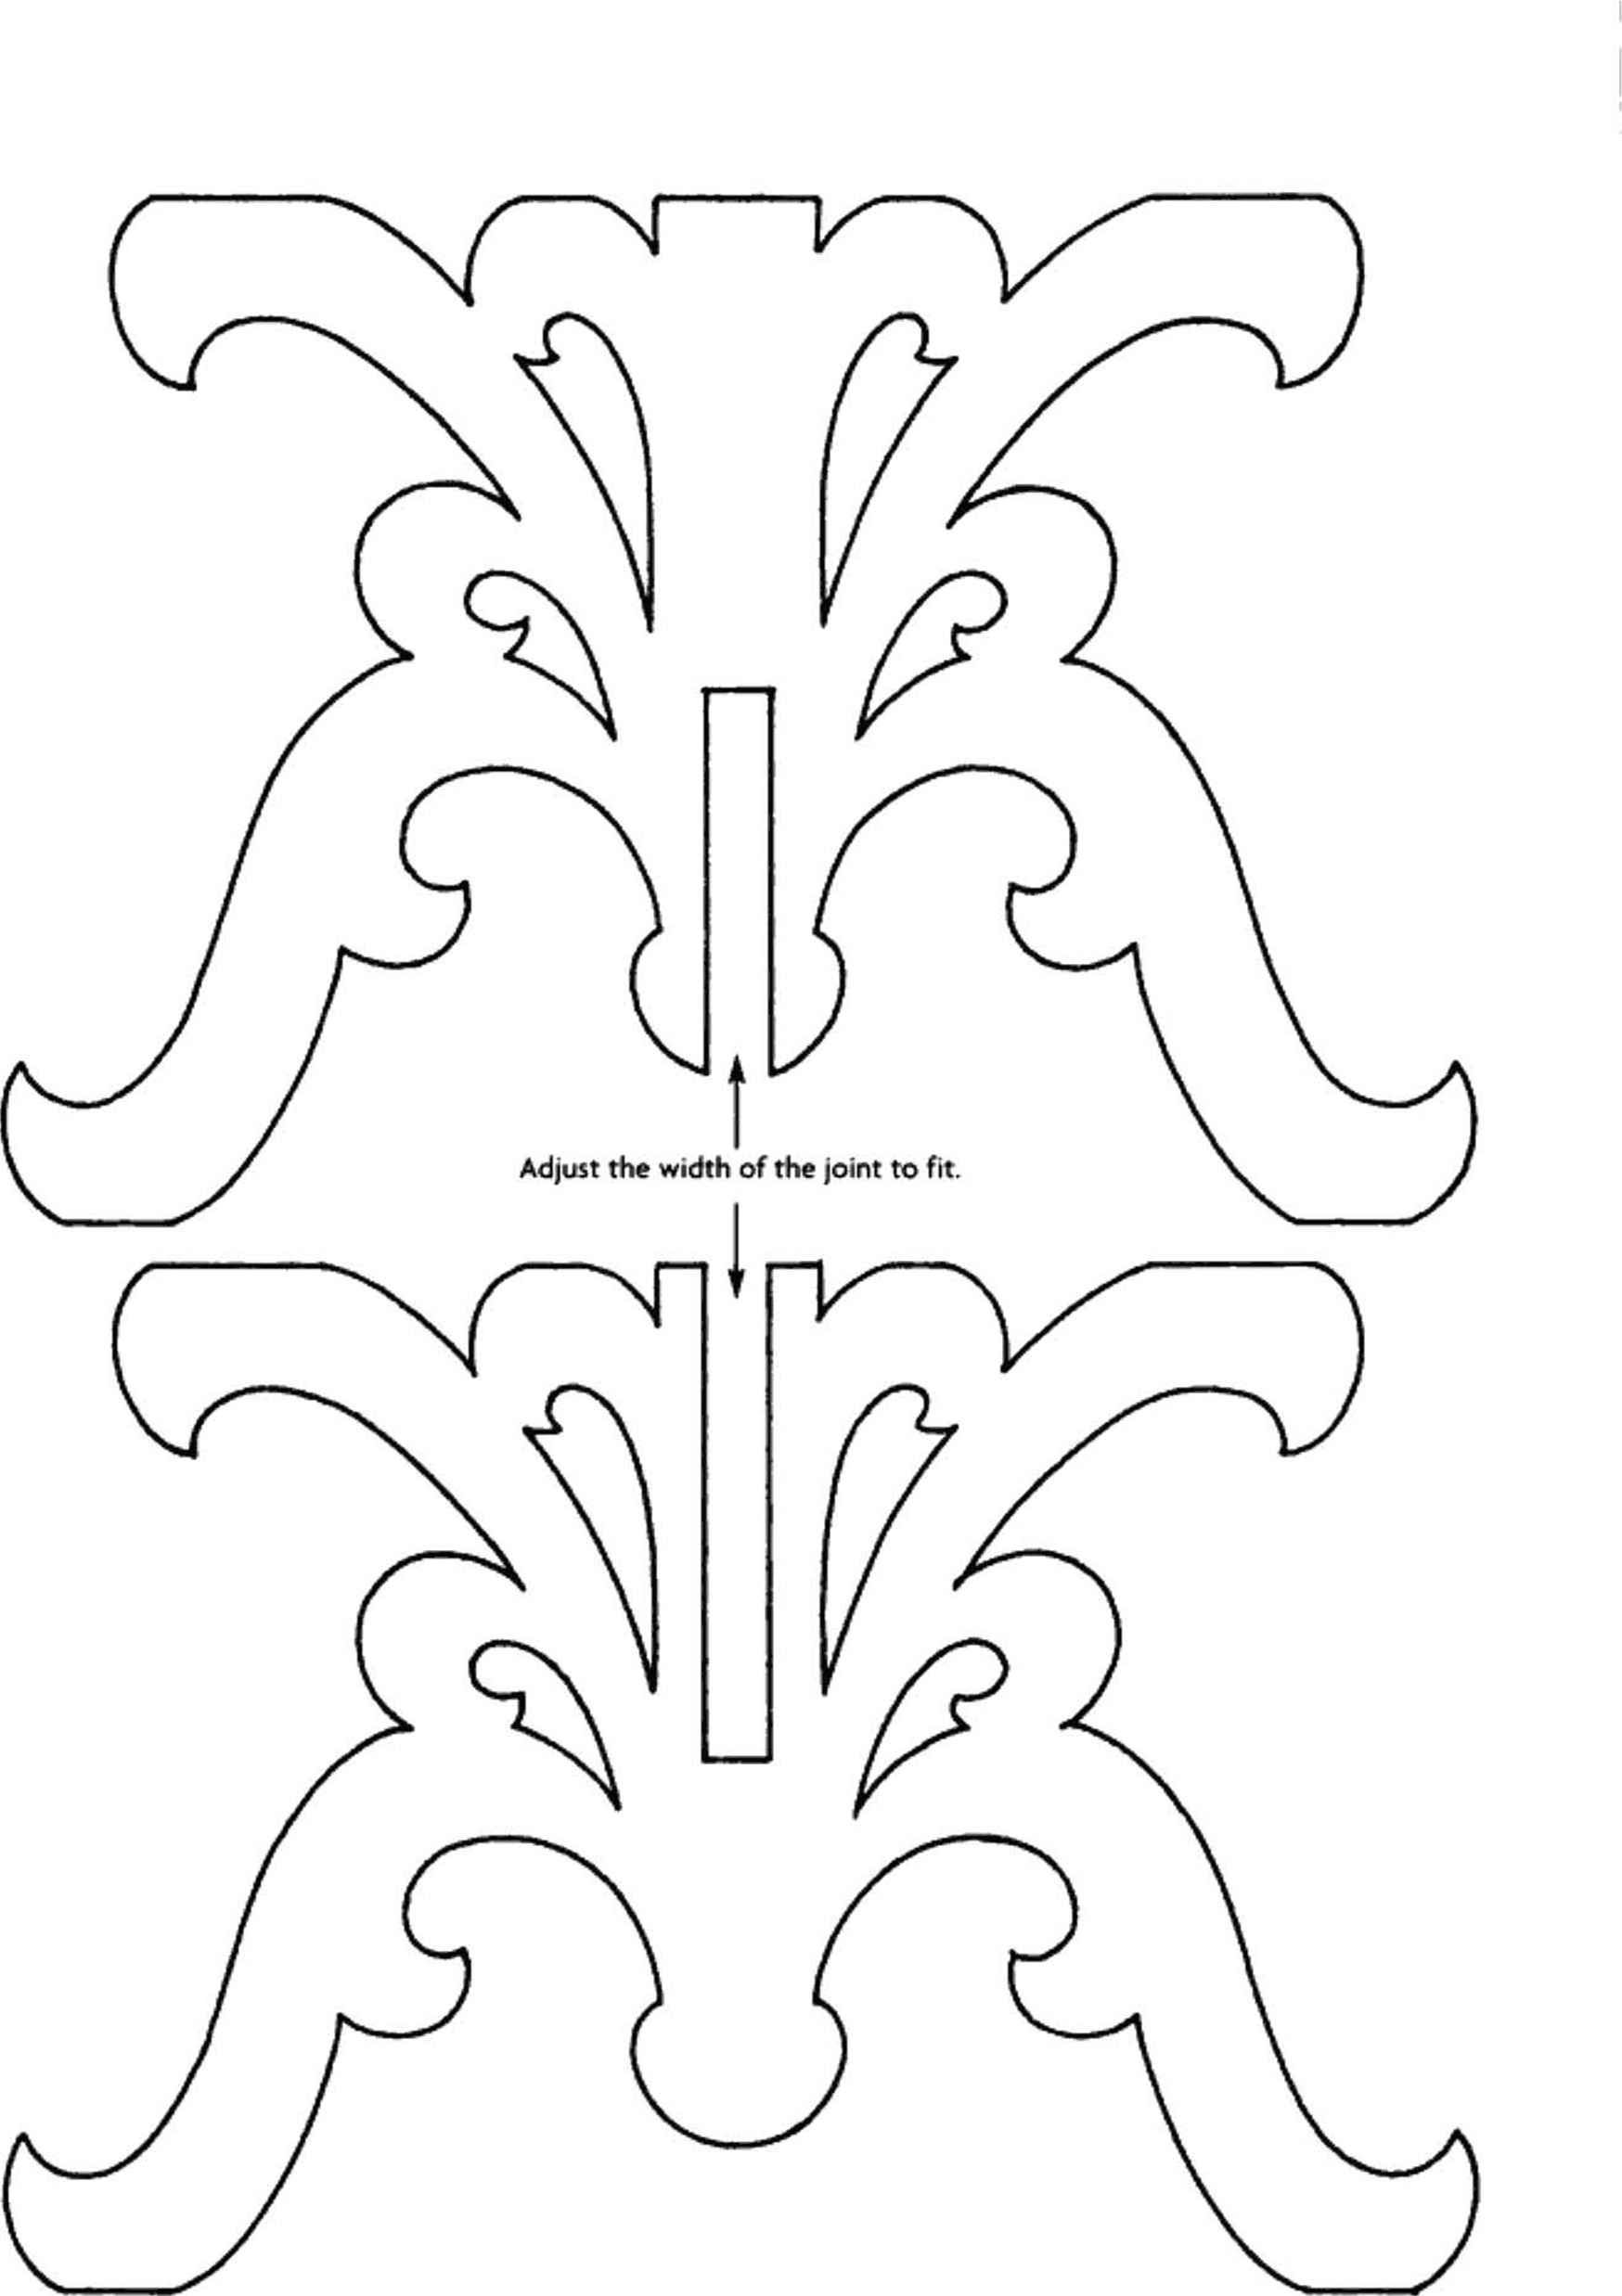 Printable Dollhouse Furniture Patterns Victorian Doll Chair Scroll Saw Woodworking Archive Diy